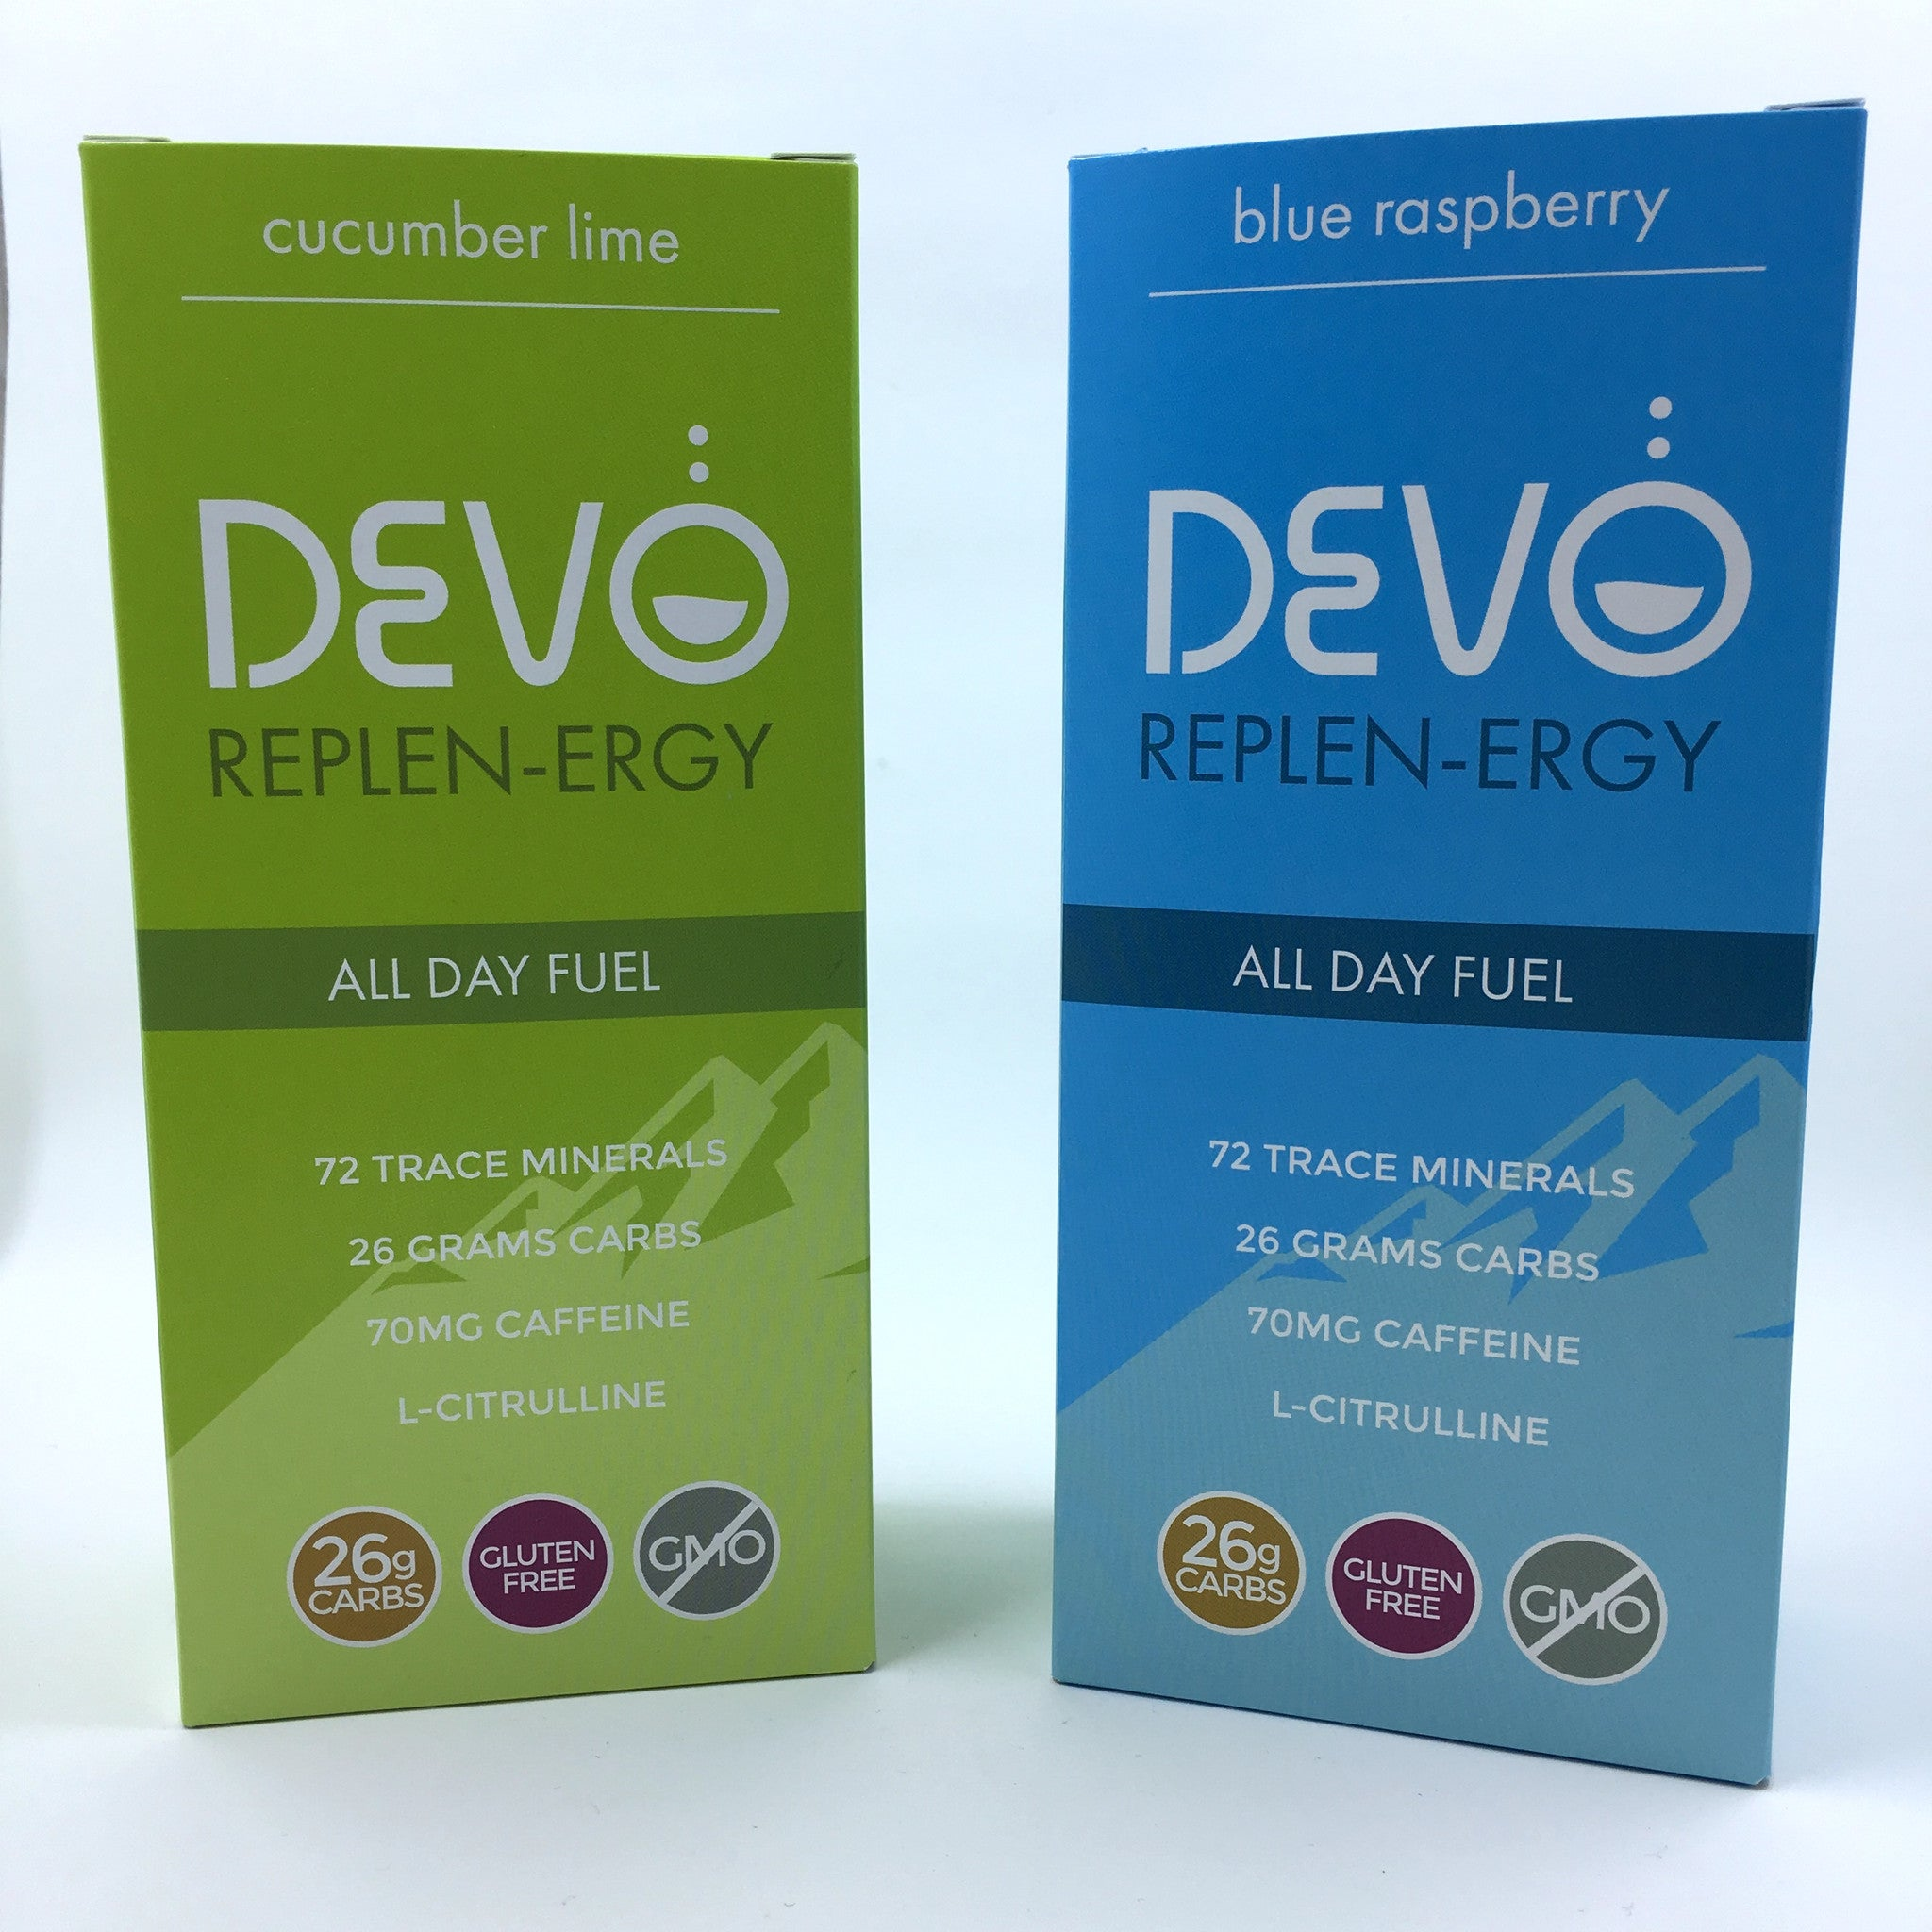 Combo Pack: Devo Replen-ergy Cucumber Lime & Blue Raspberry